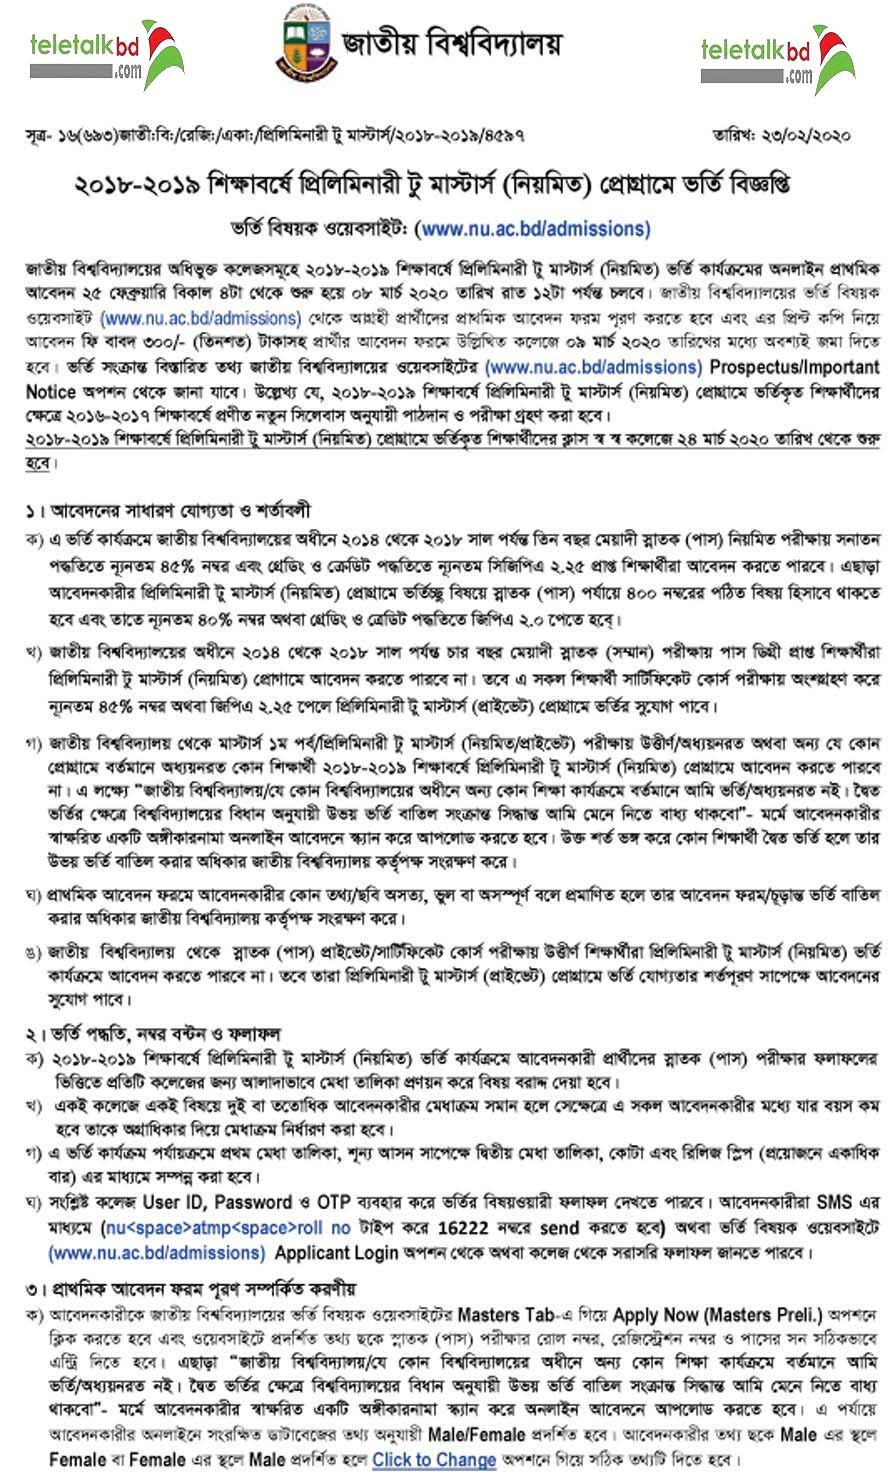 NU Masters Final Year Admission Notice